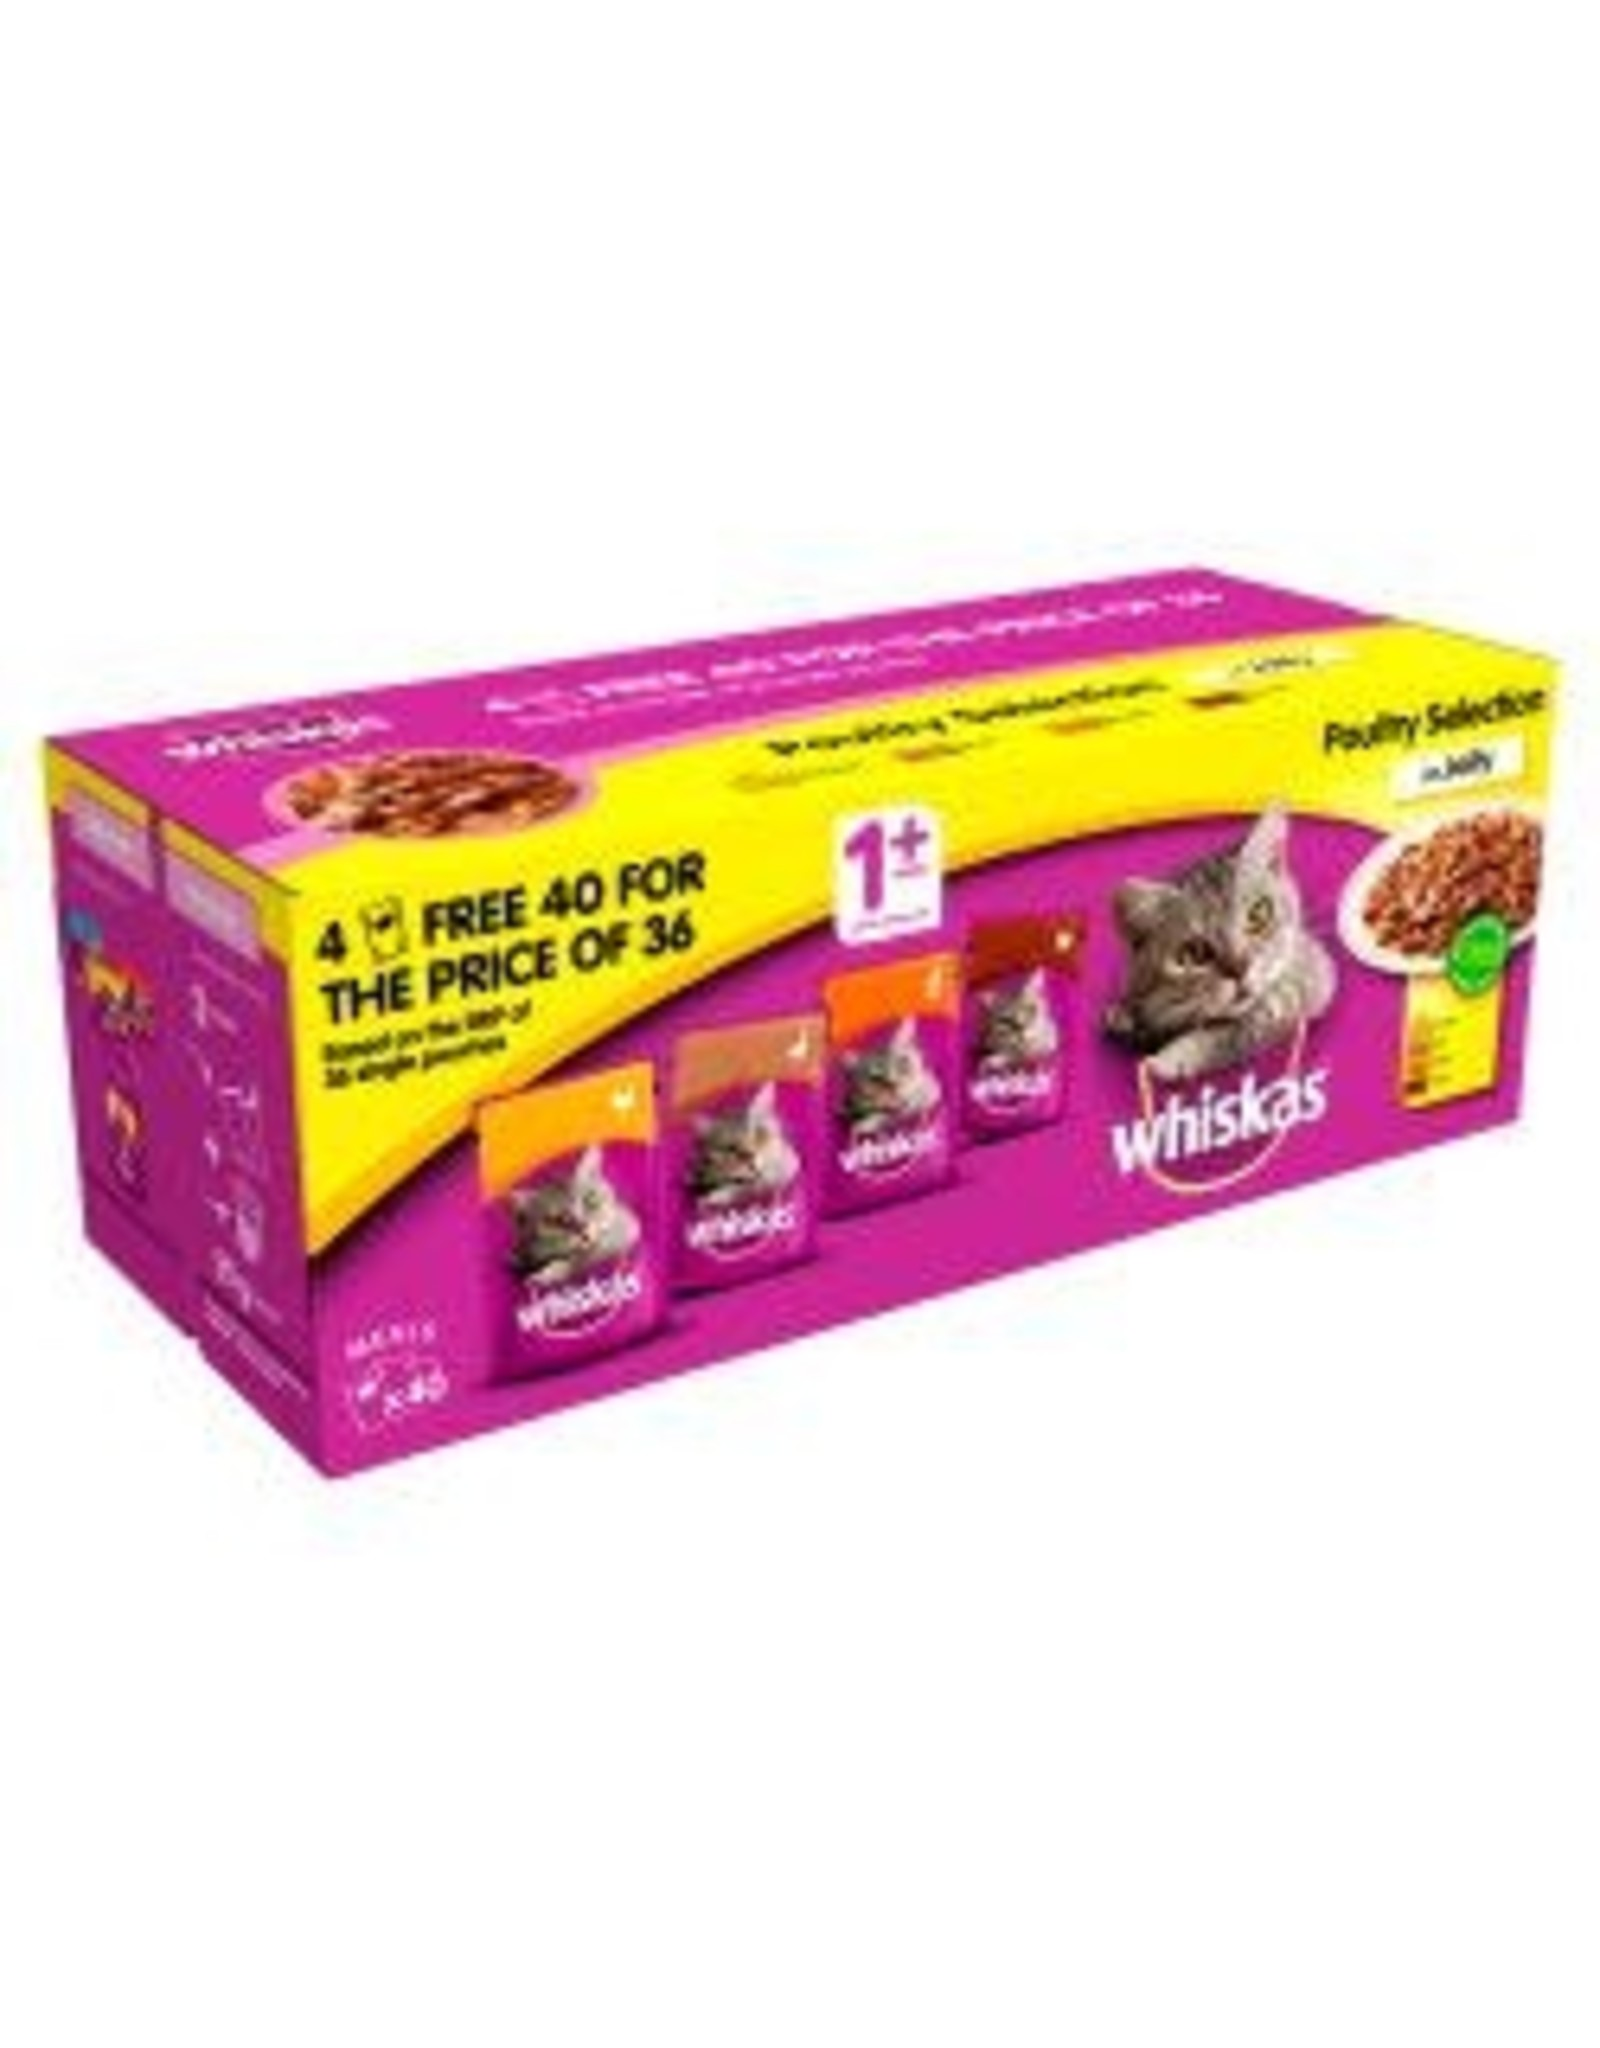 Whiskas Whiskas 1+ Cat Pouches Poultry In Jelly 40 Pack